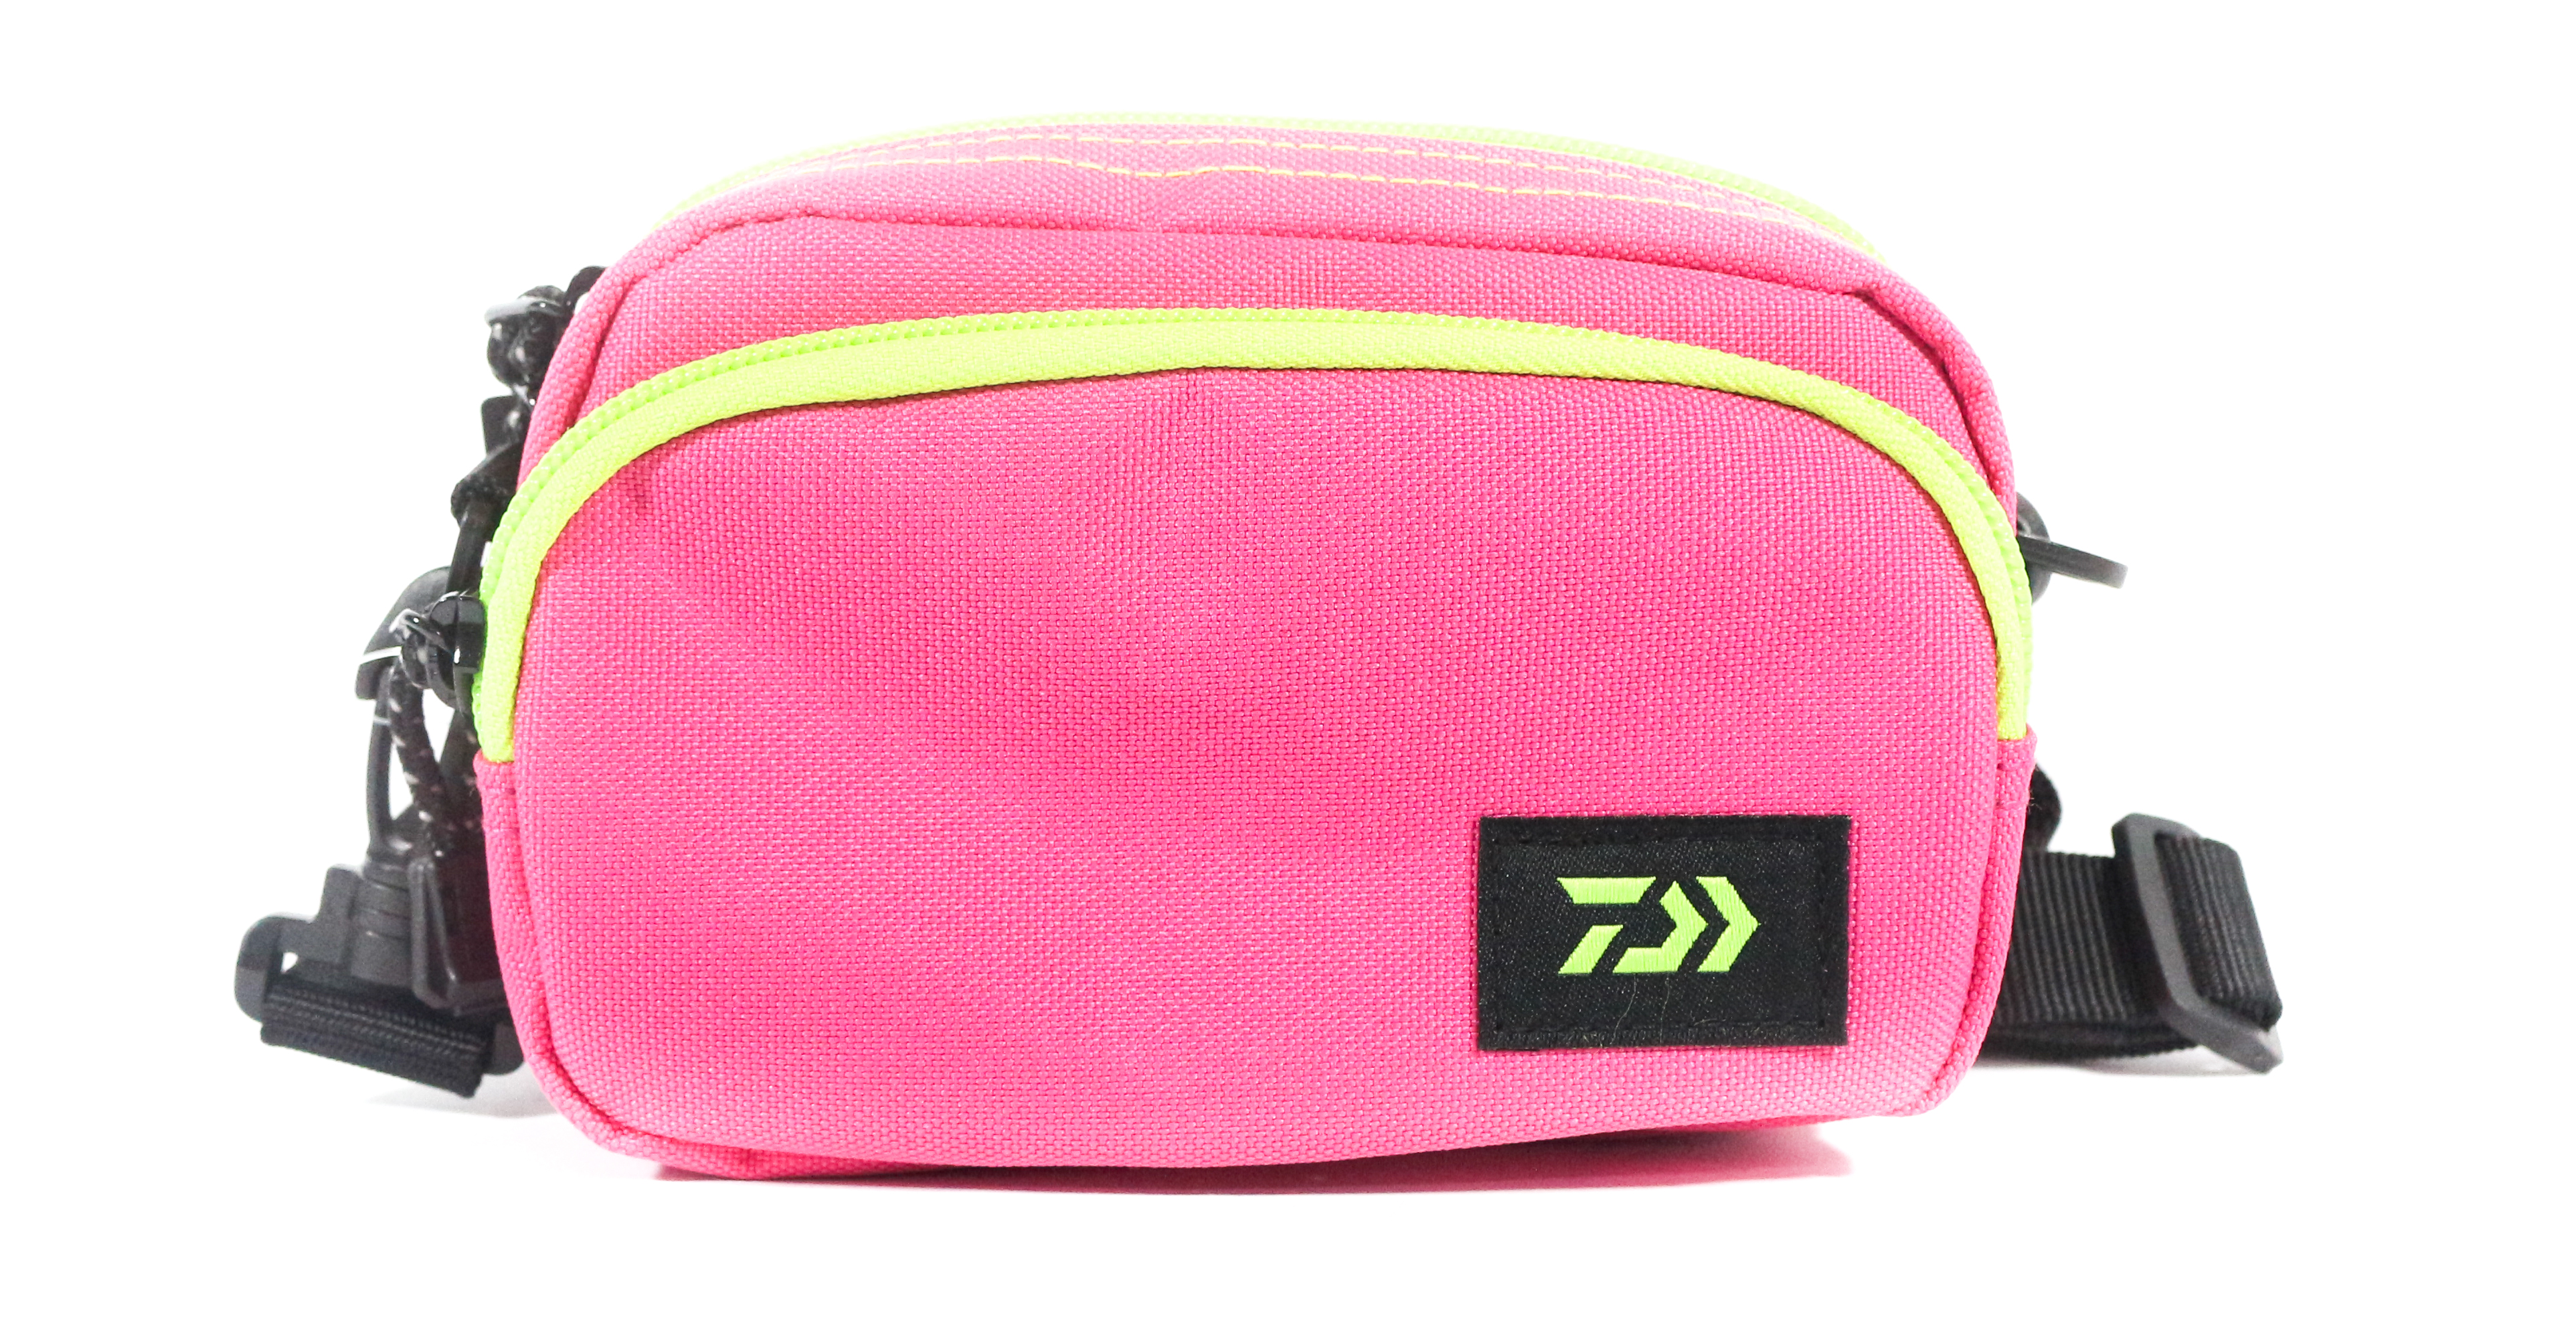 Sale Daiwa Light Pouch 6 x 16 x 11 cm Pink 190831